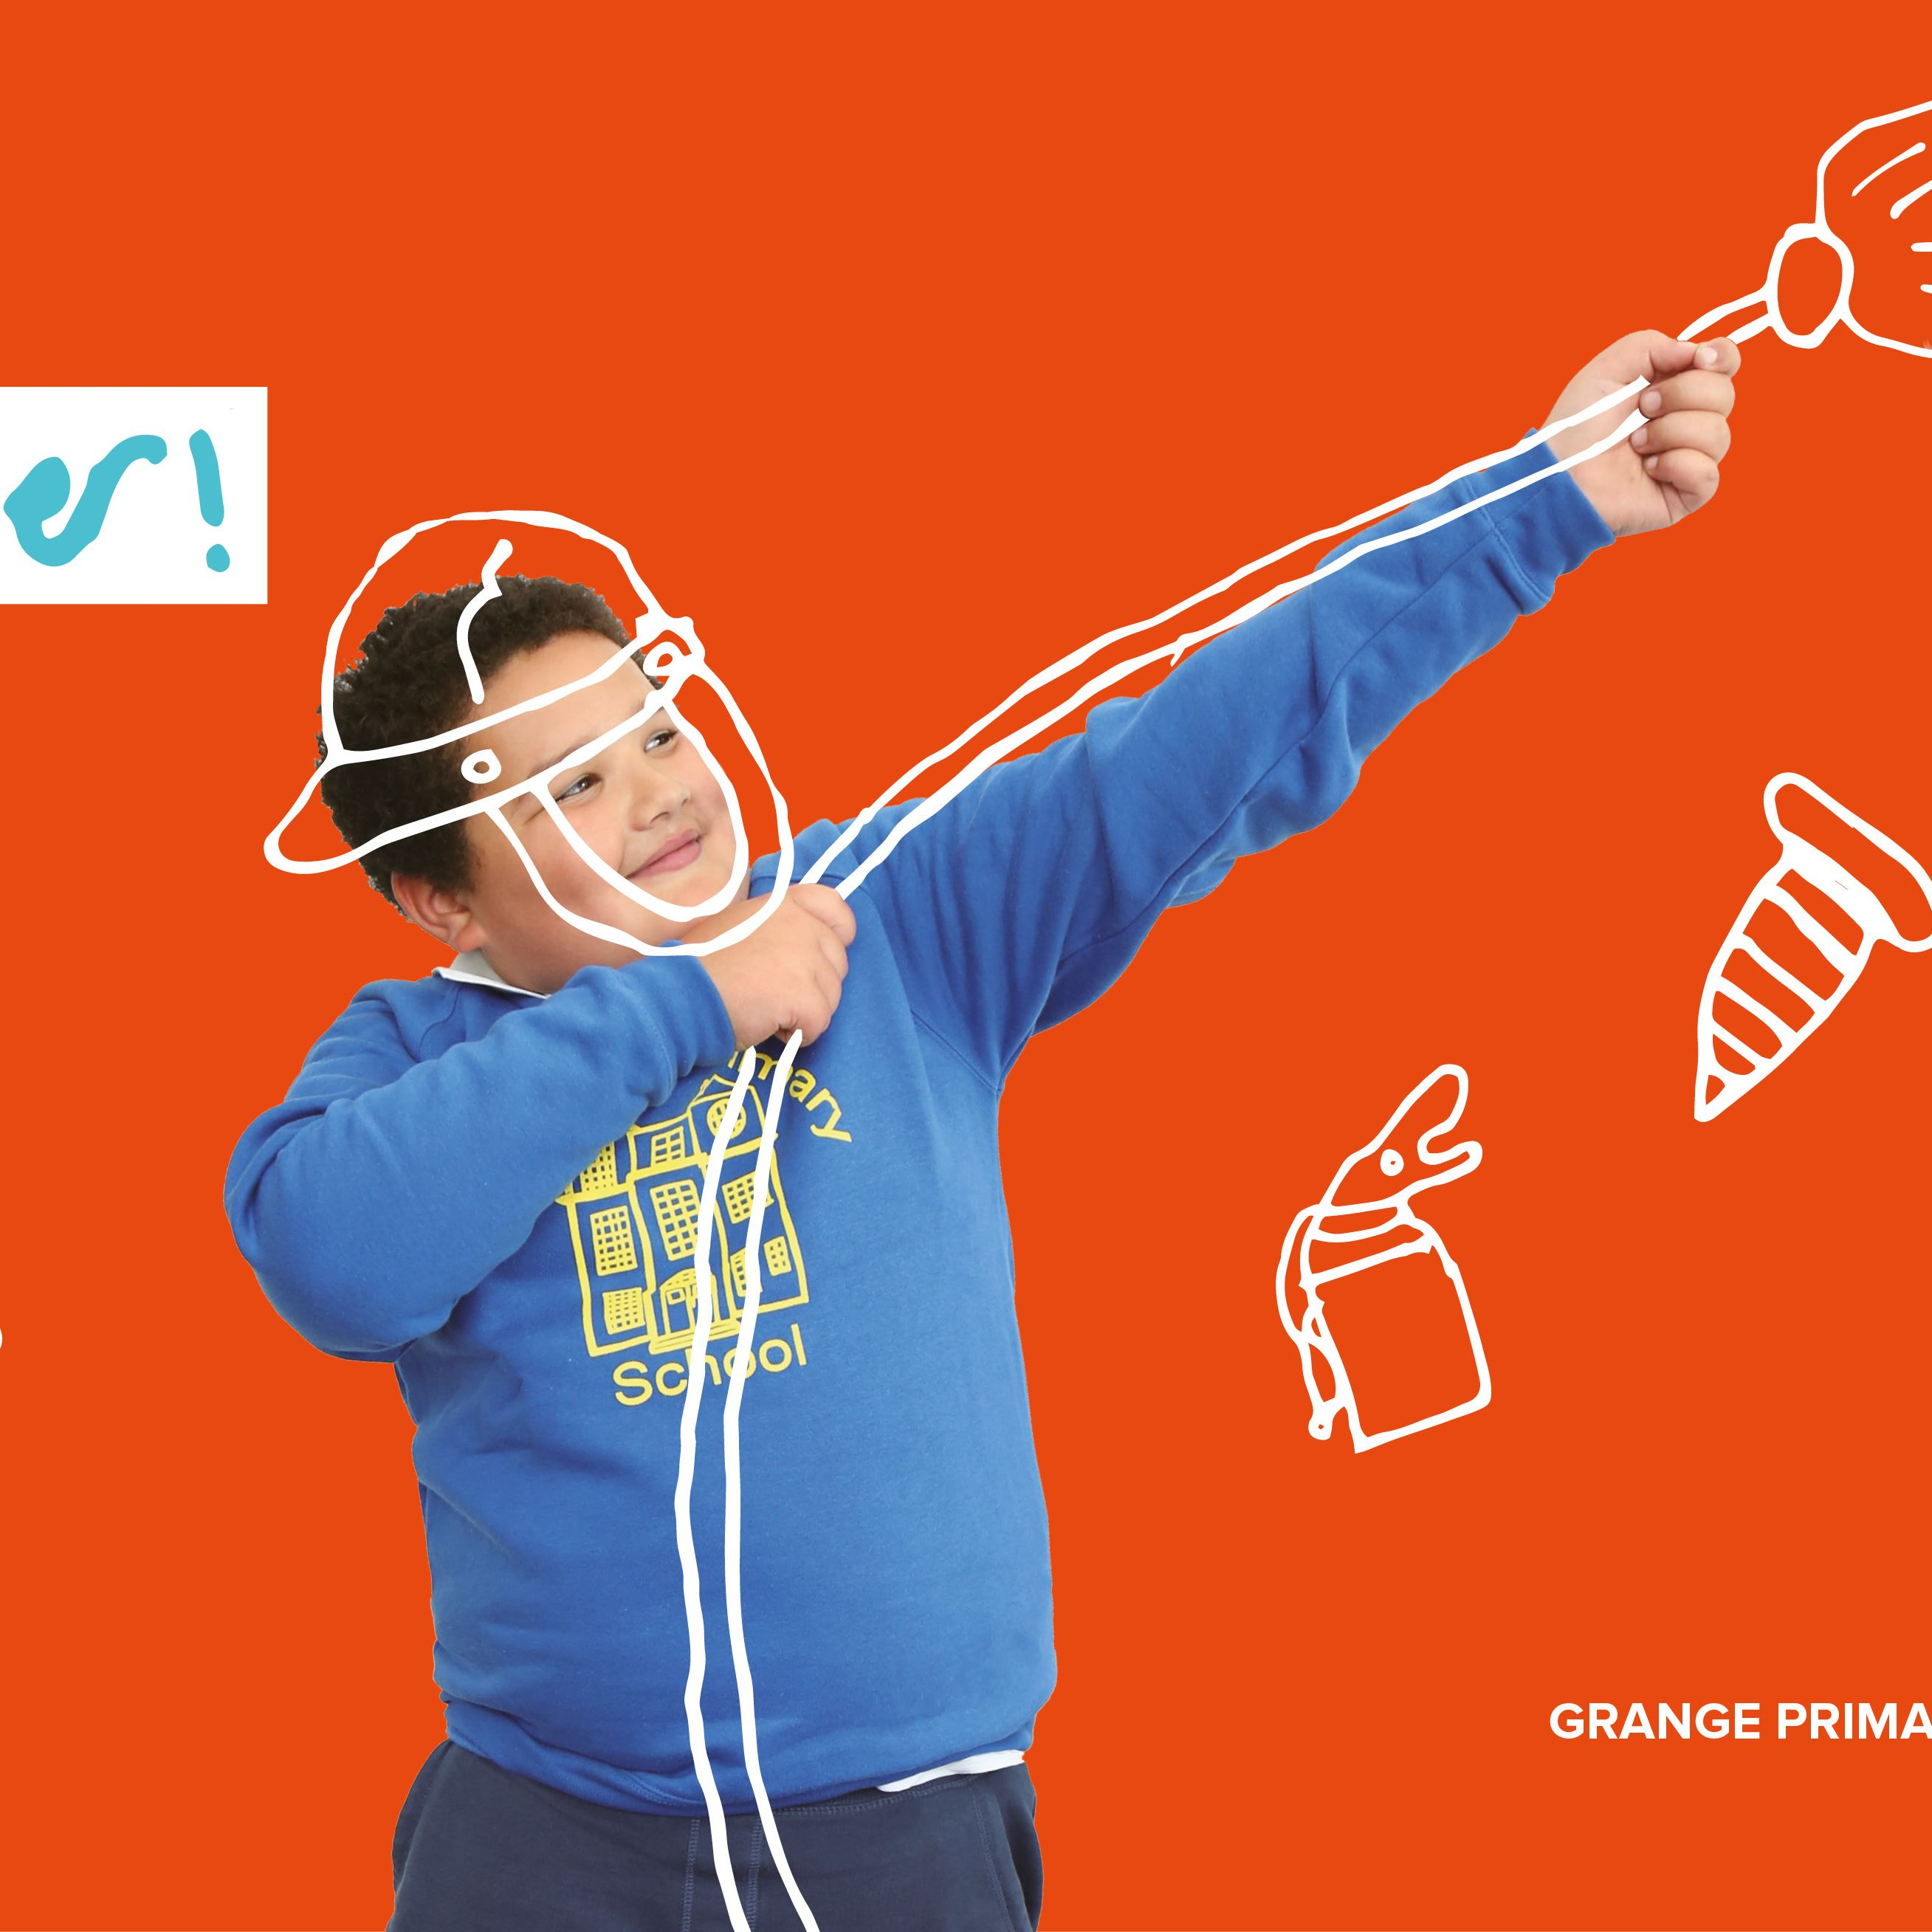 Promotional poster for Grange Primary School showing a child with the text